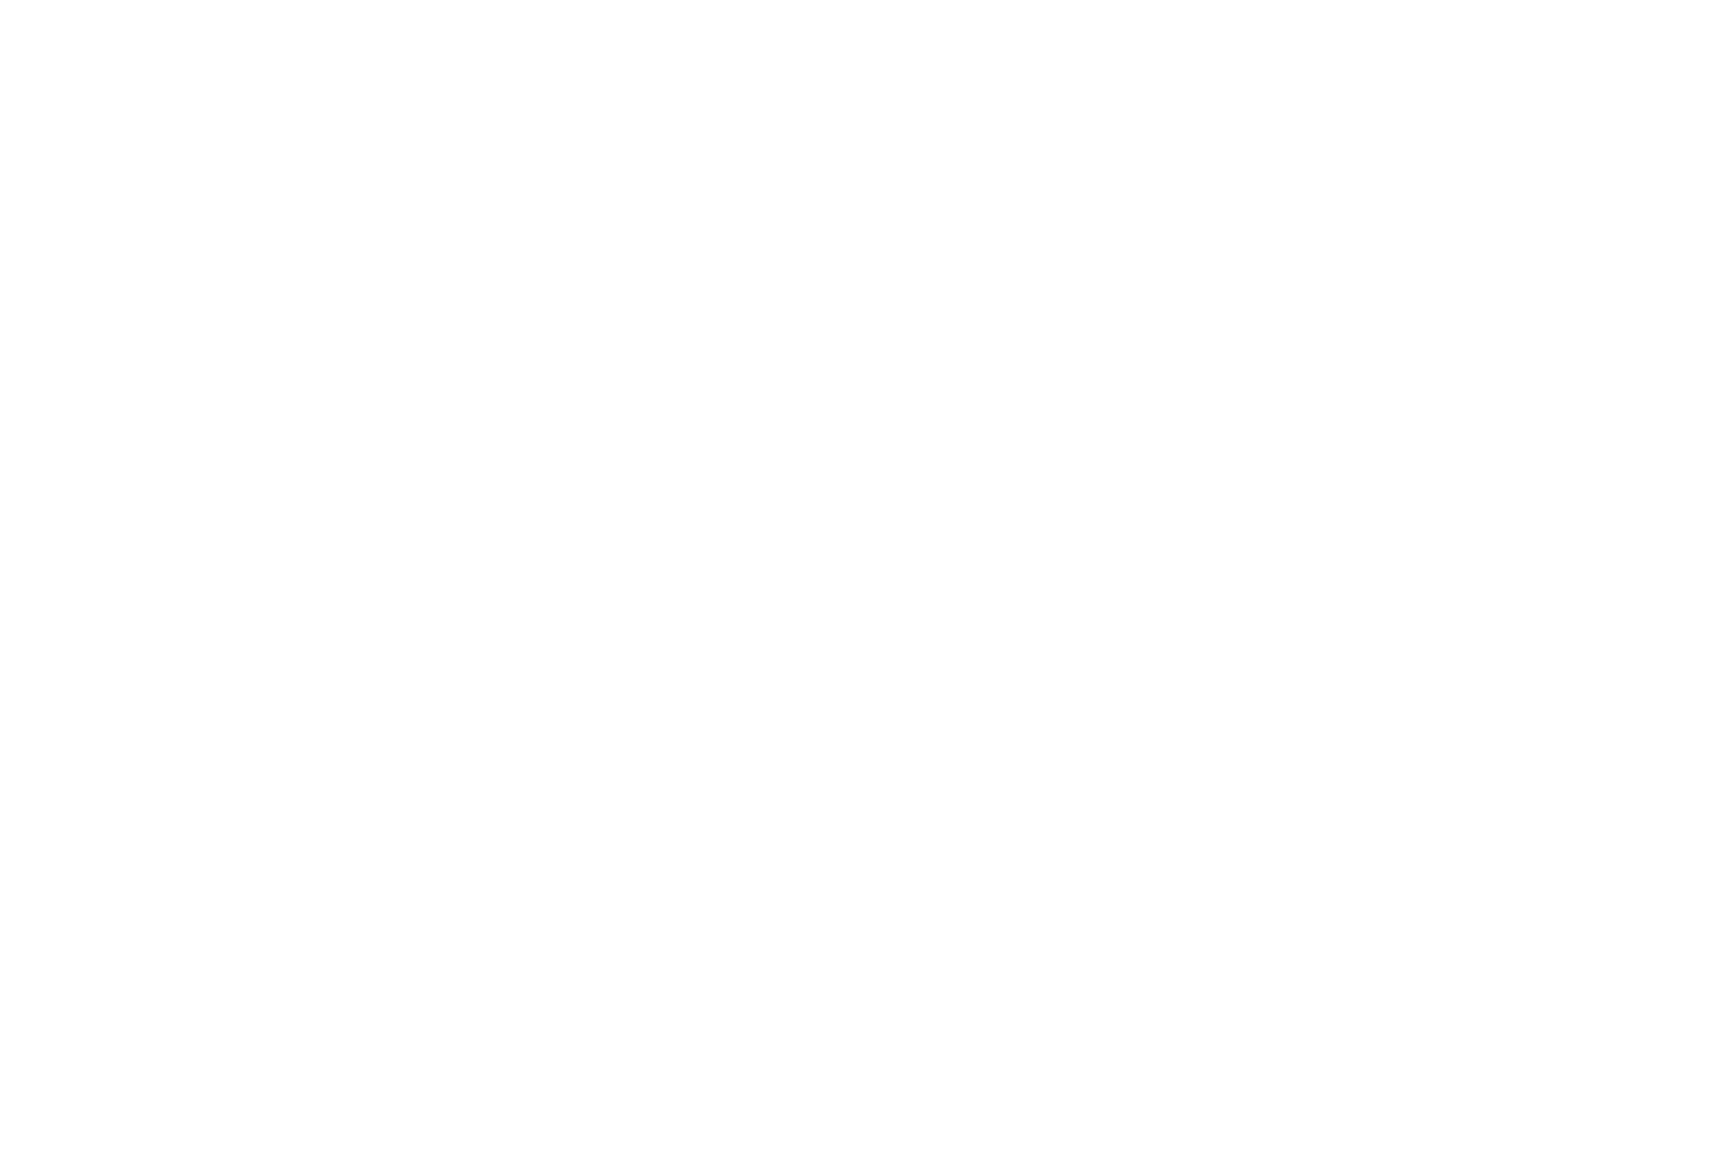 Official Selection - Circle City Film Festival - 2018 - Laurel White.png